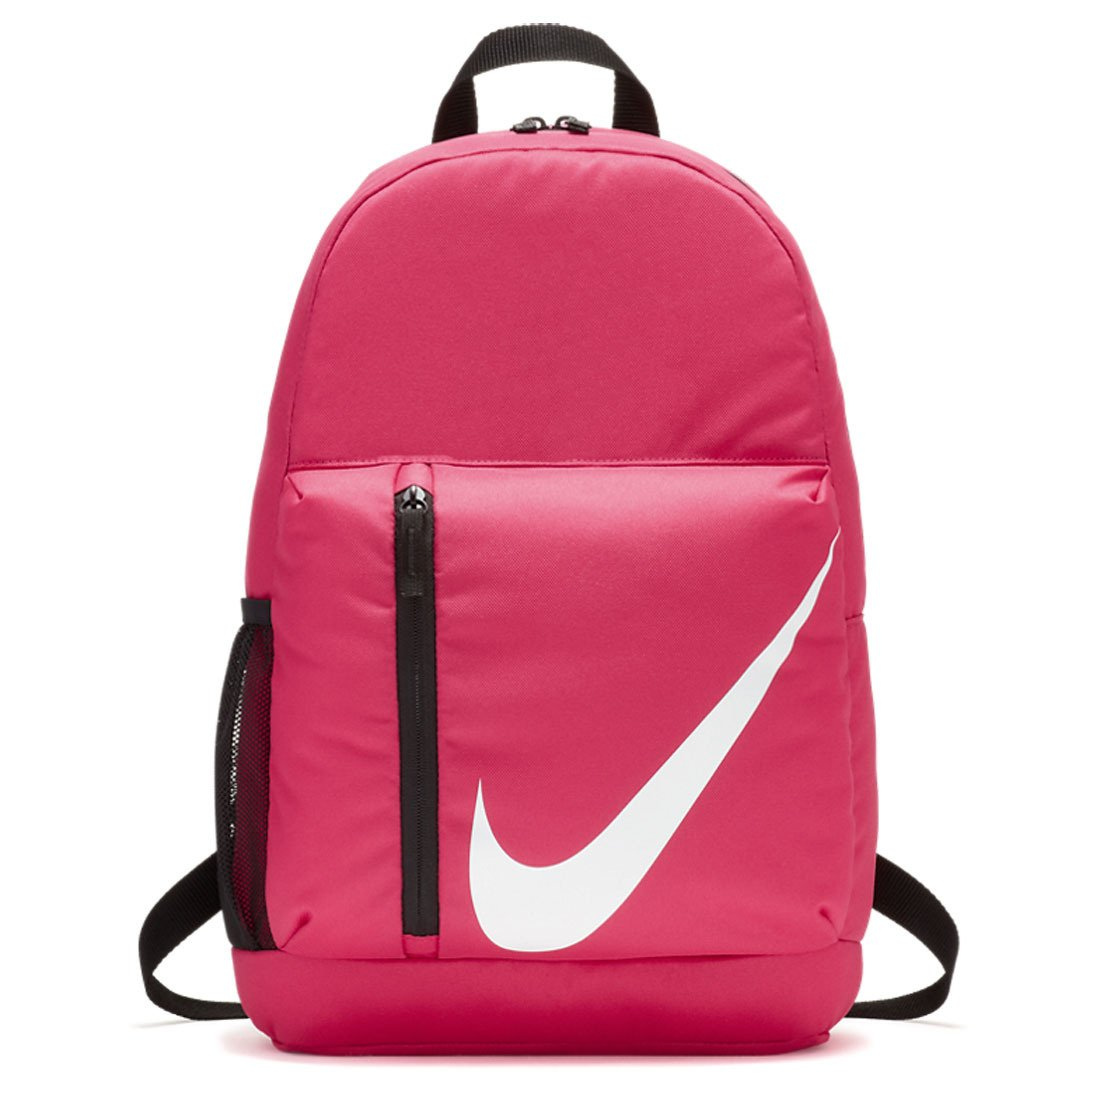 16533912bd59 Details about Nike ELEMENTAL Pink Kids Girls Sports Backpack Rucksack  School Bag Junior Unisex